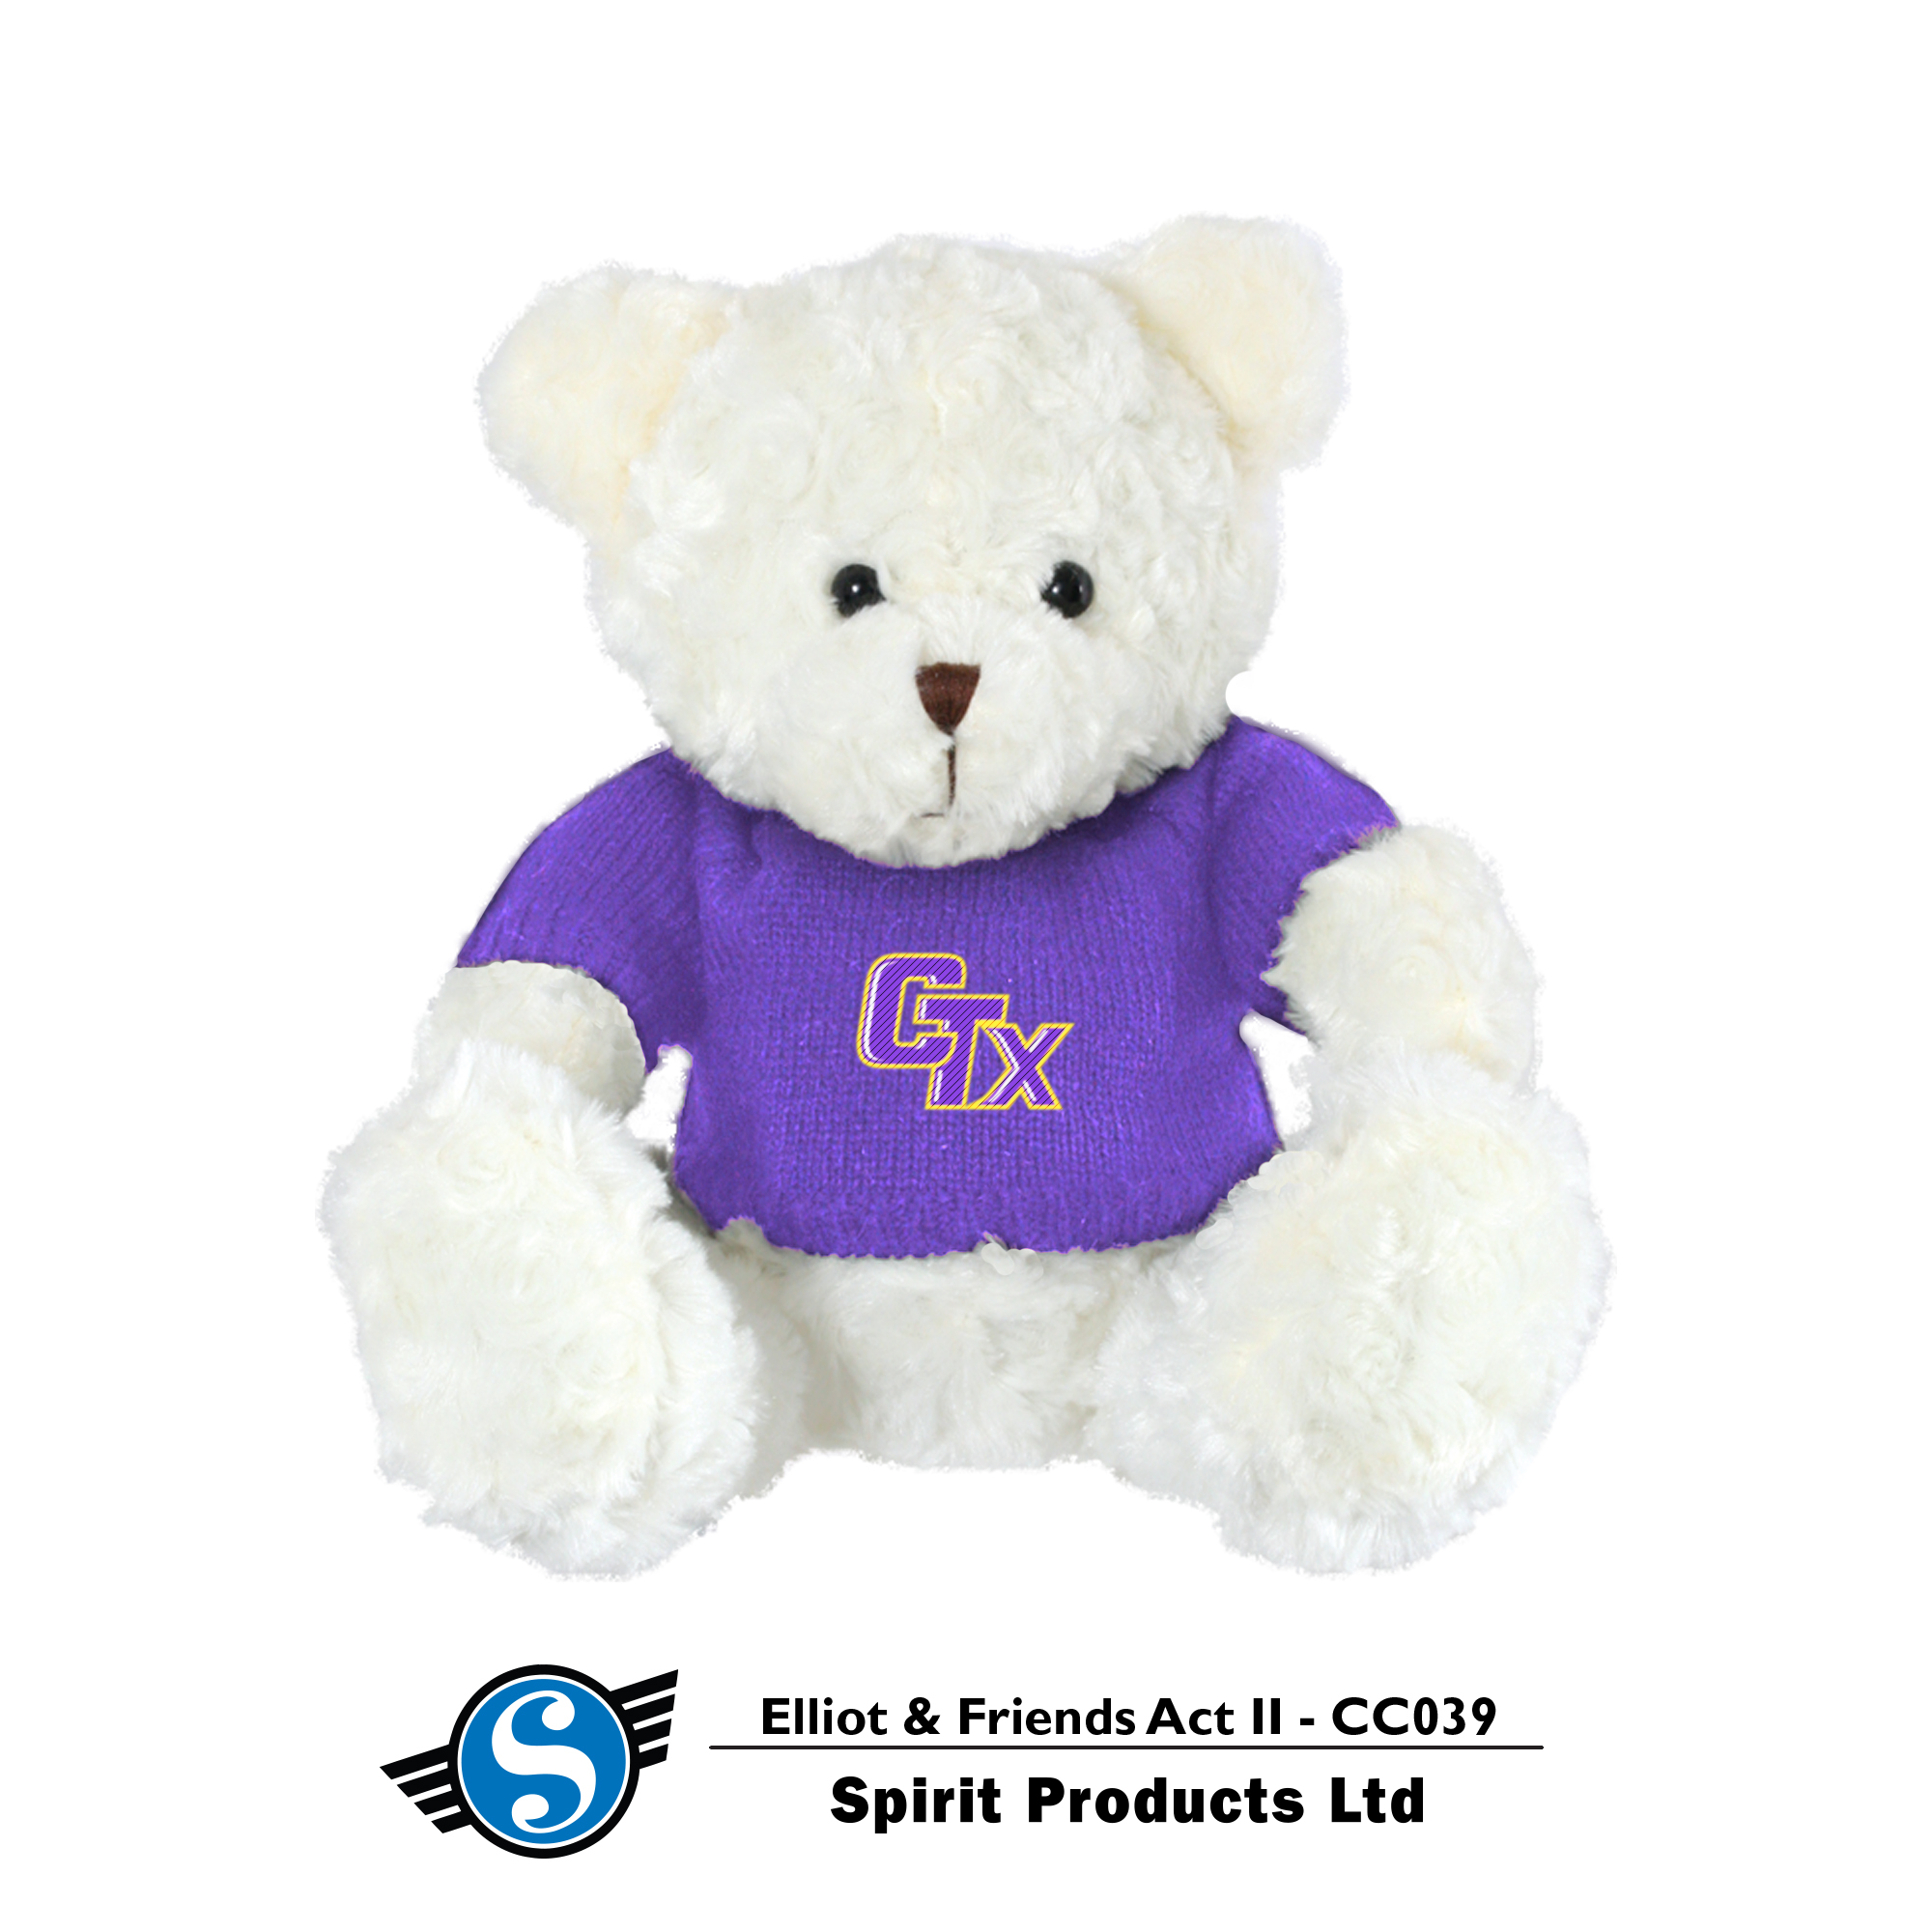 Bear in CTX Sweater - Ivory